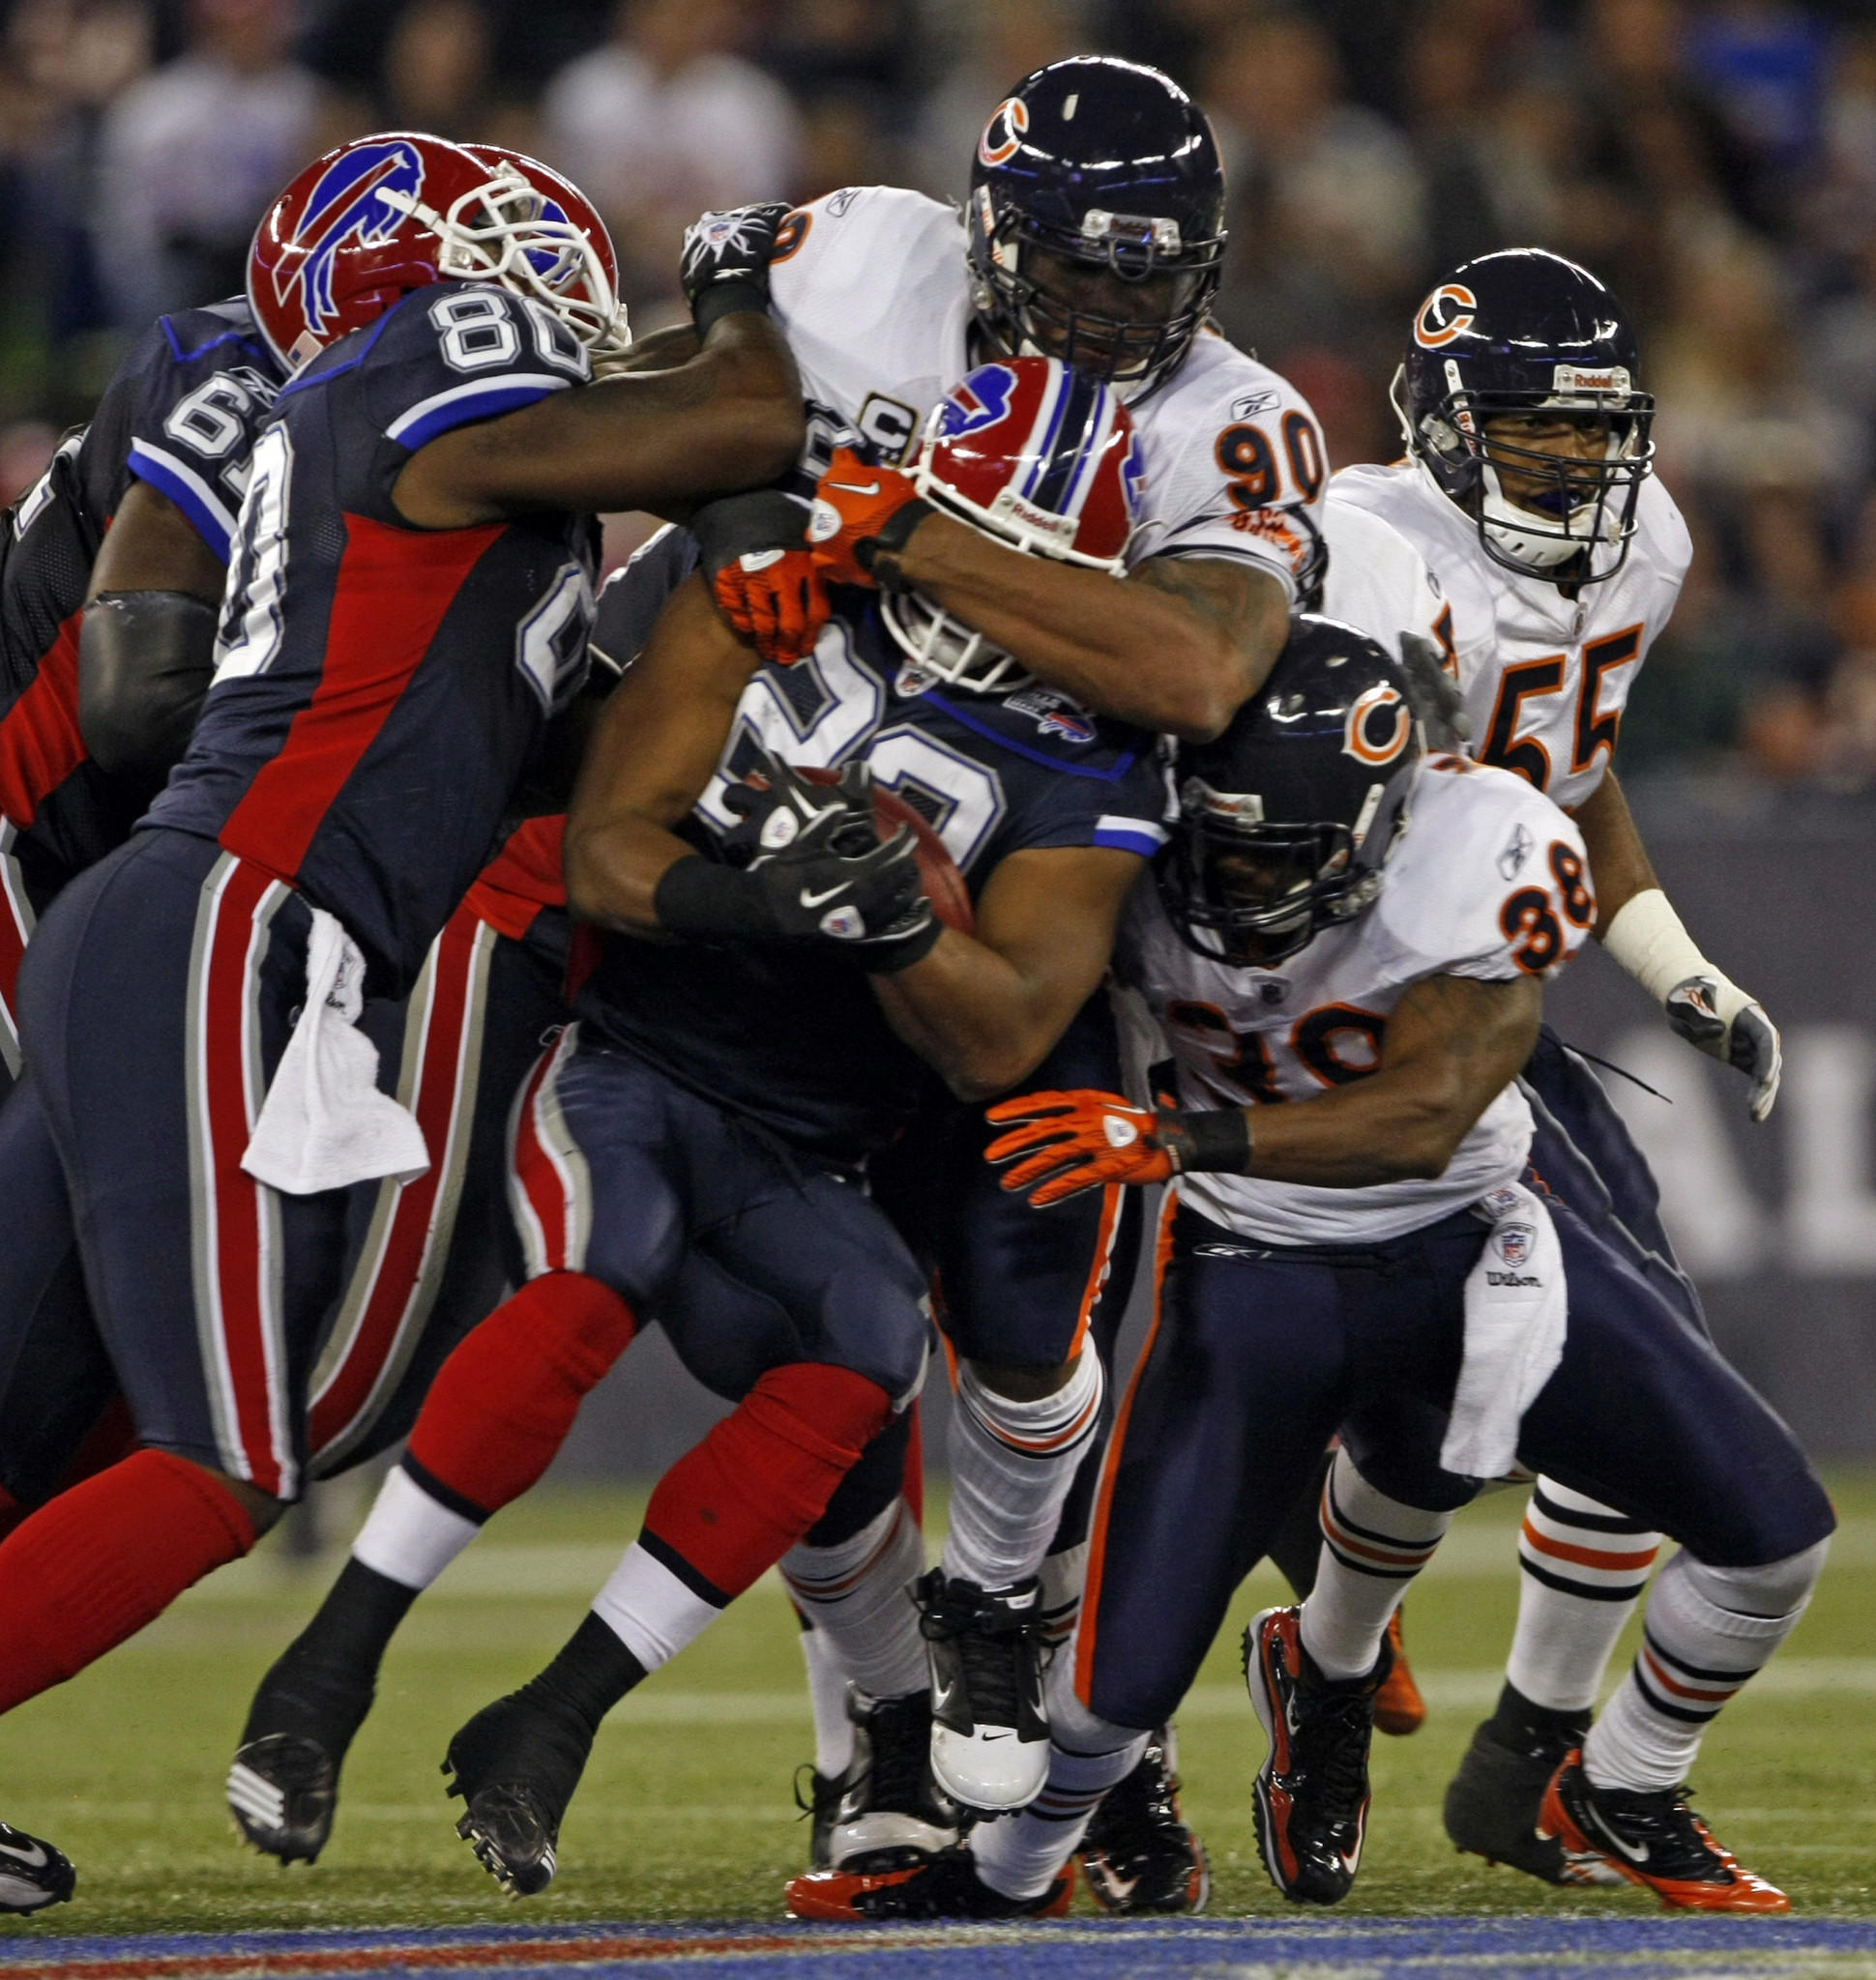 The Bears' Julius Peppers envelopes the Bills' Fred Jackson during a 2010 game at Rogers Centre in Toronto.